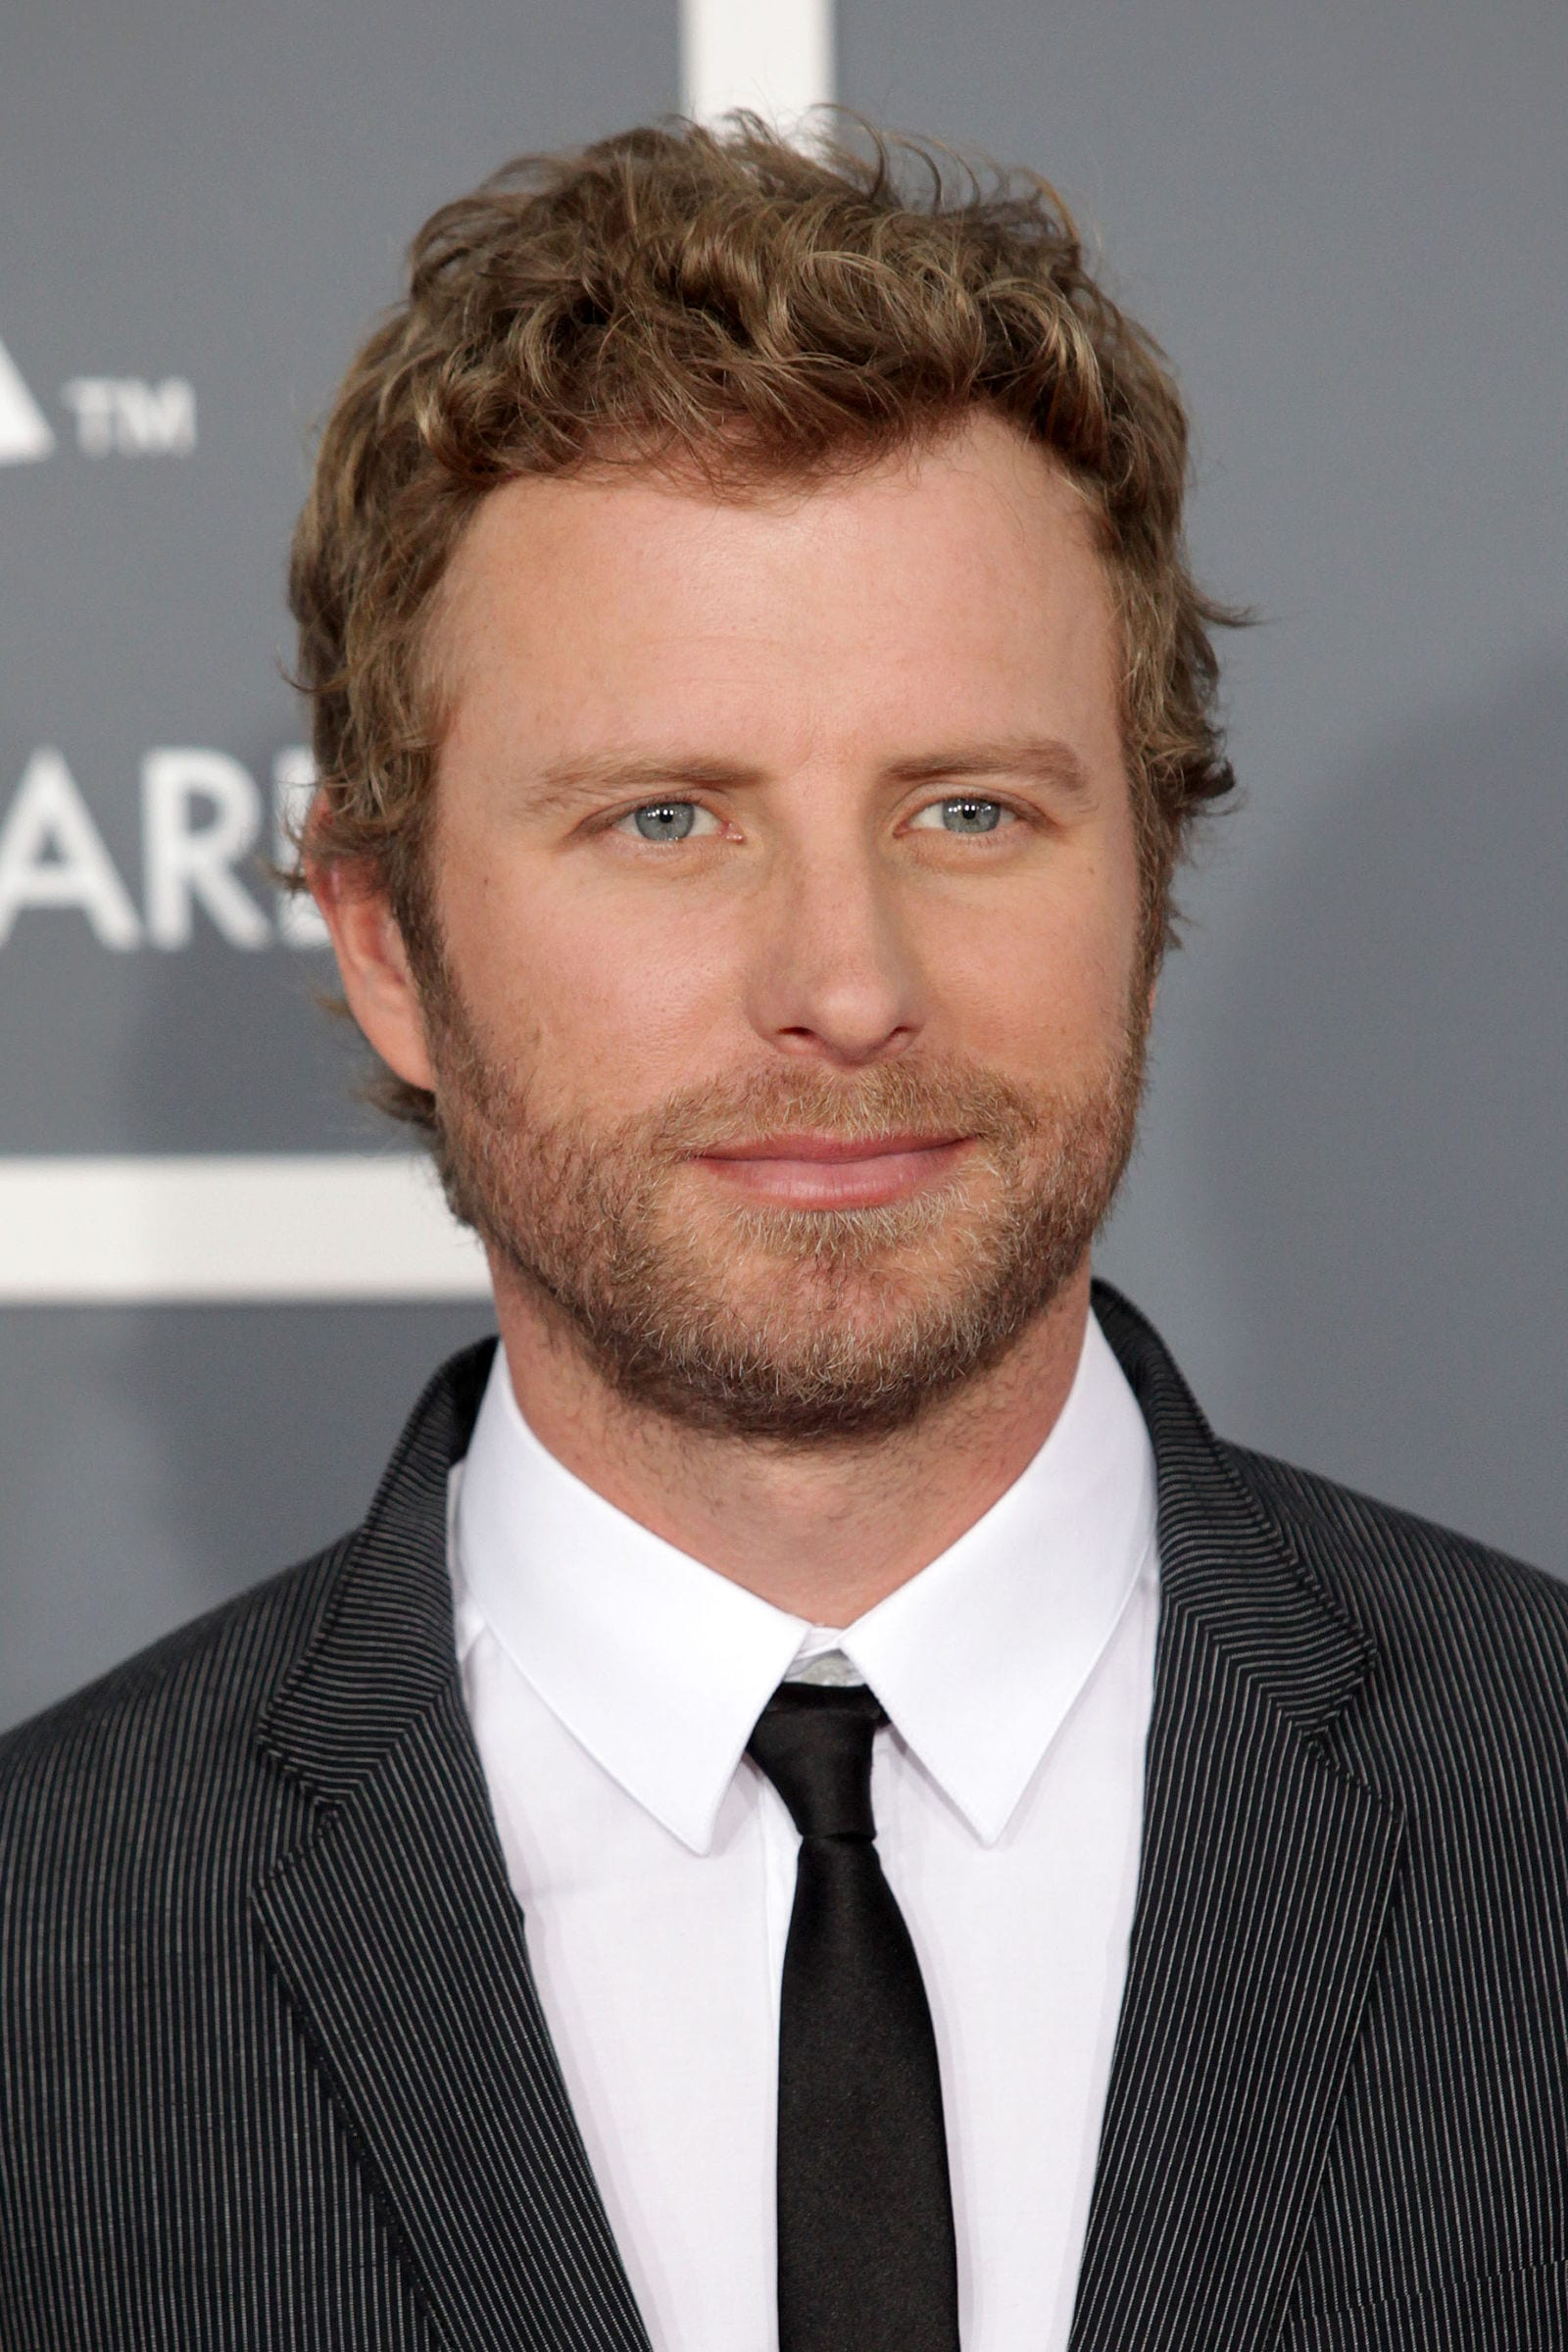 Dierks Bentley medium curly by DFree